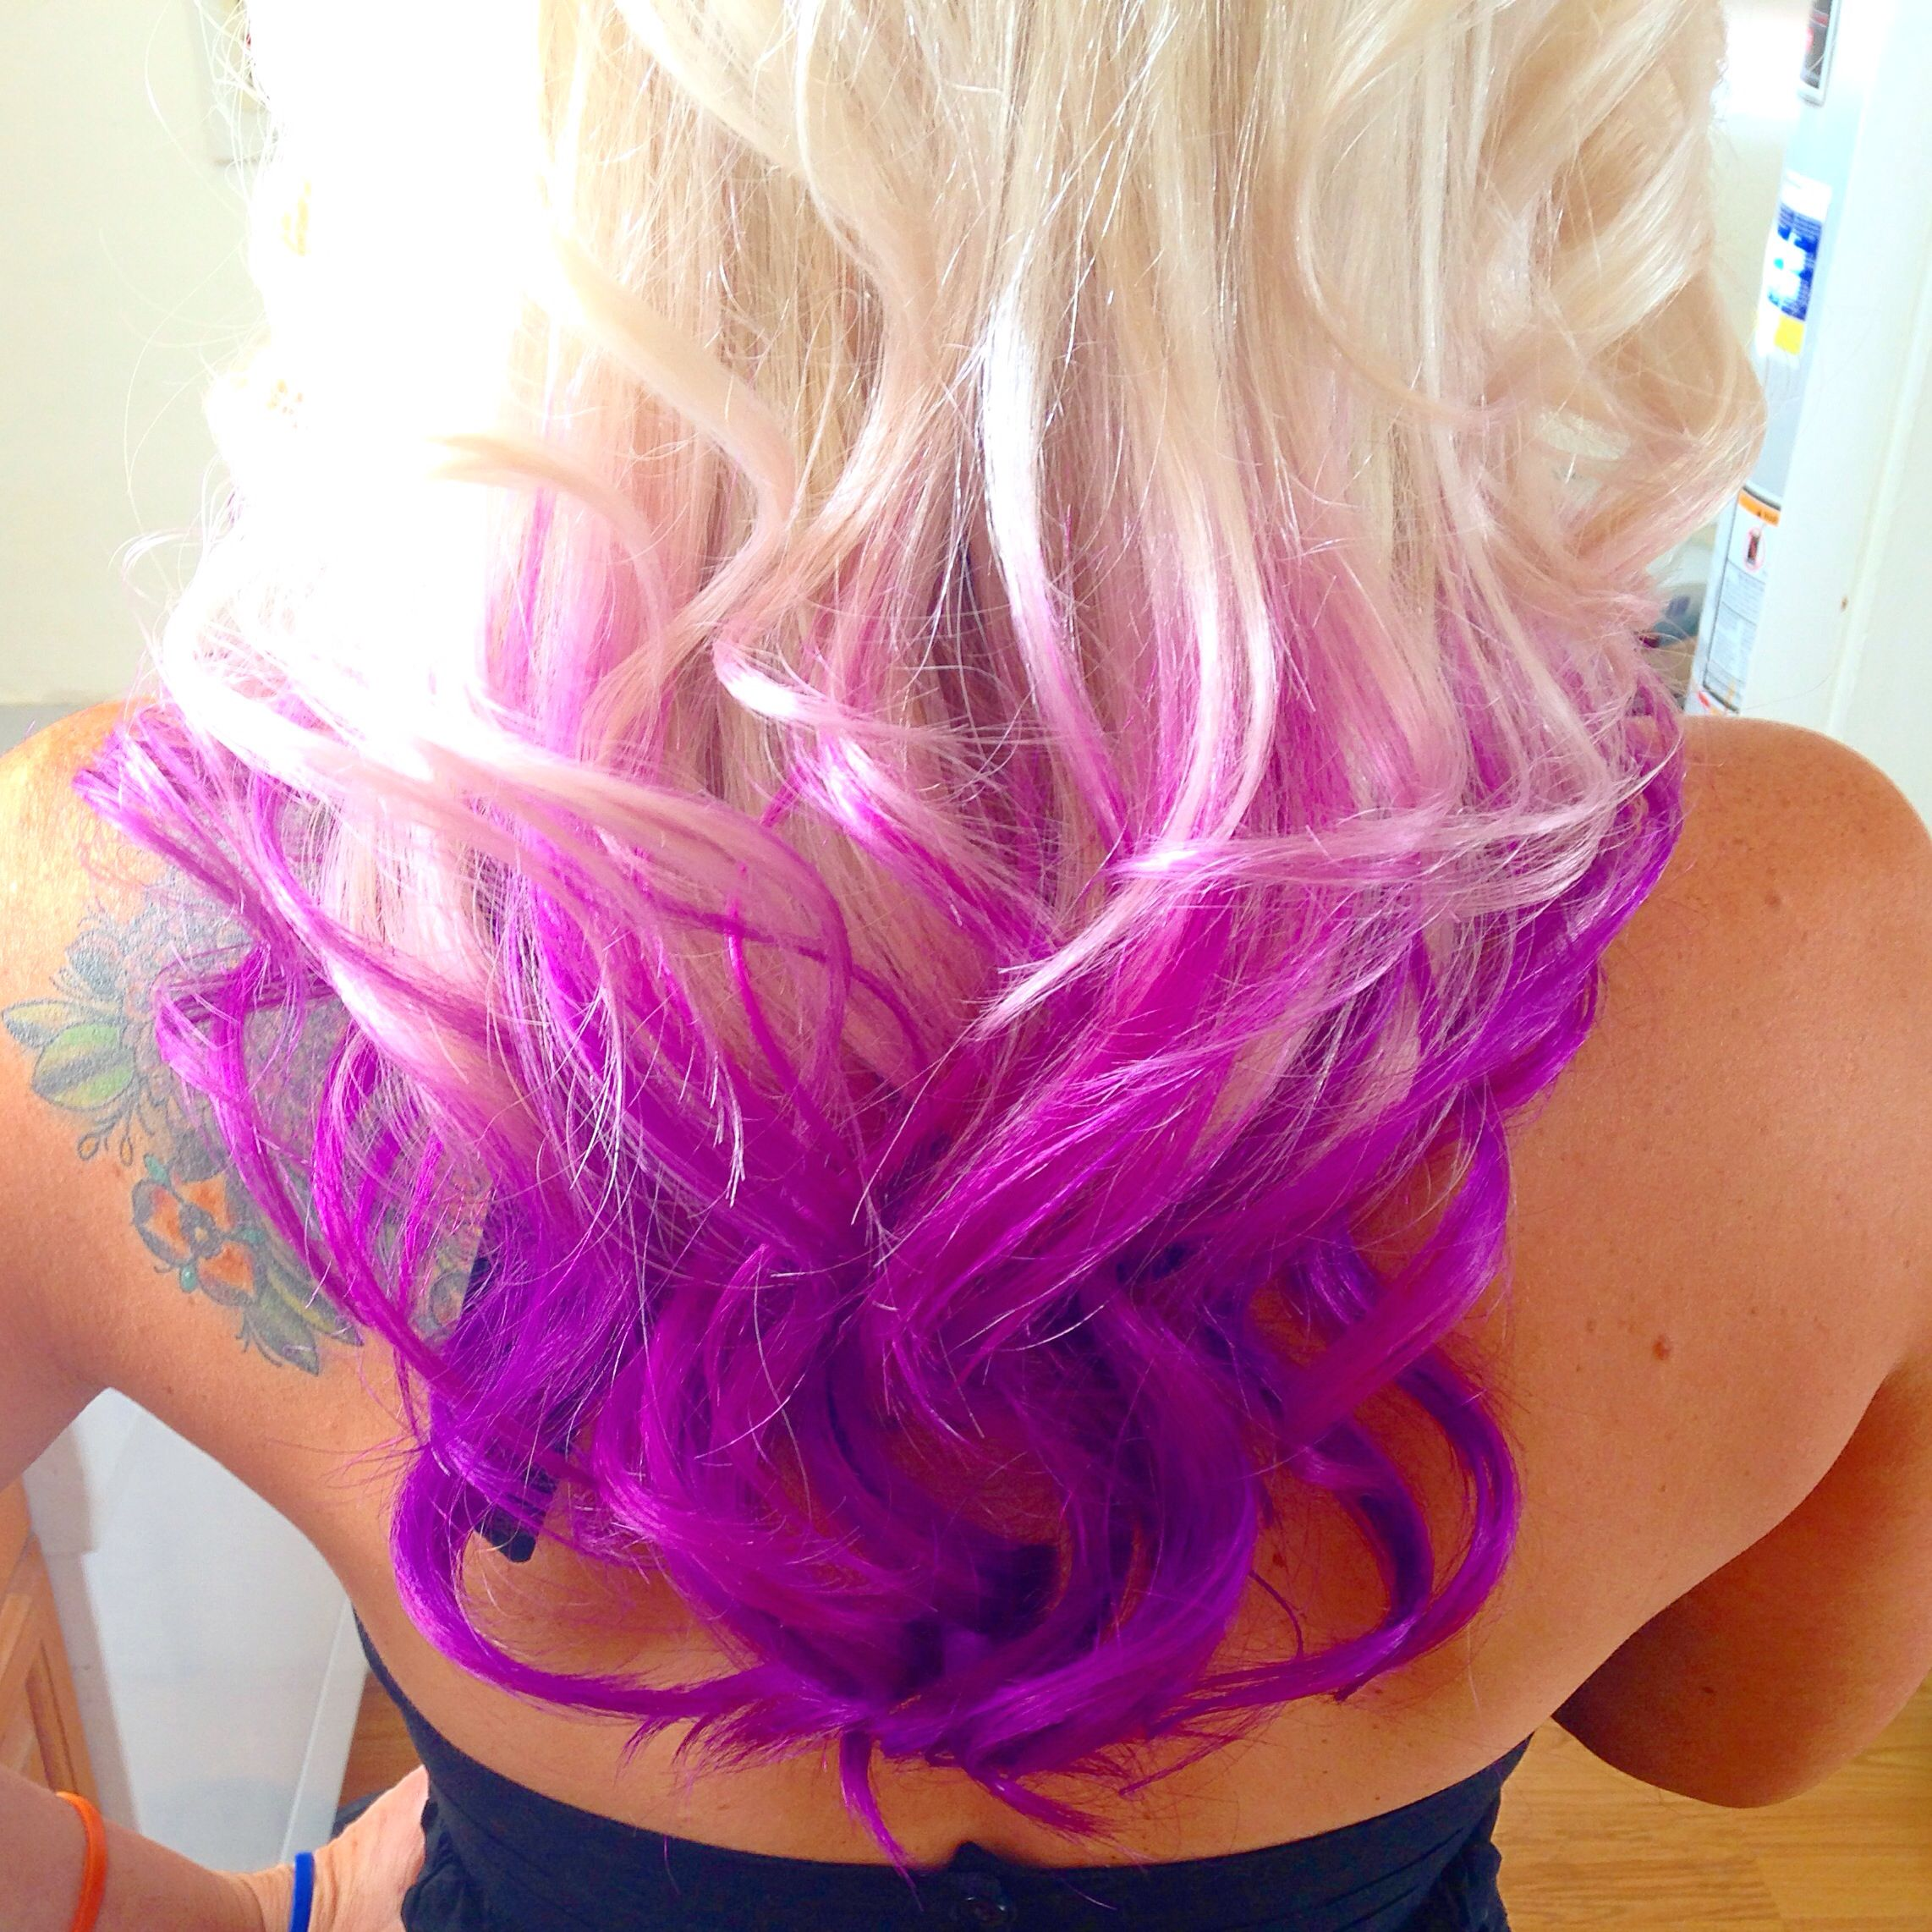 Joico color intensity, orchid   hairstyles   Pinterest   Hair ...